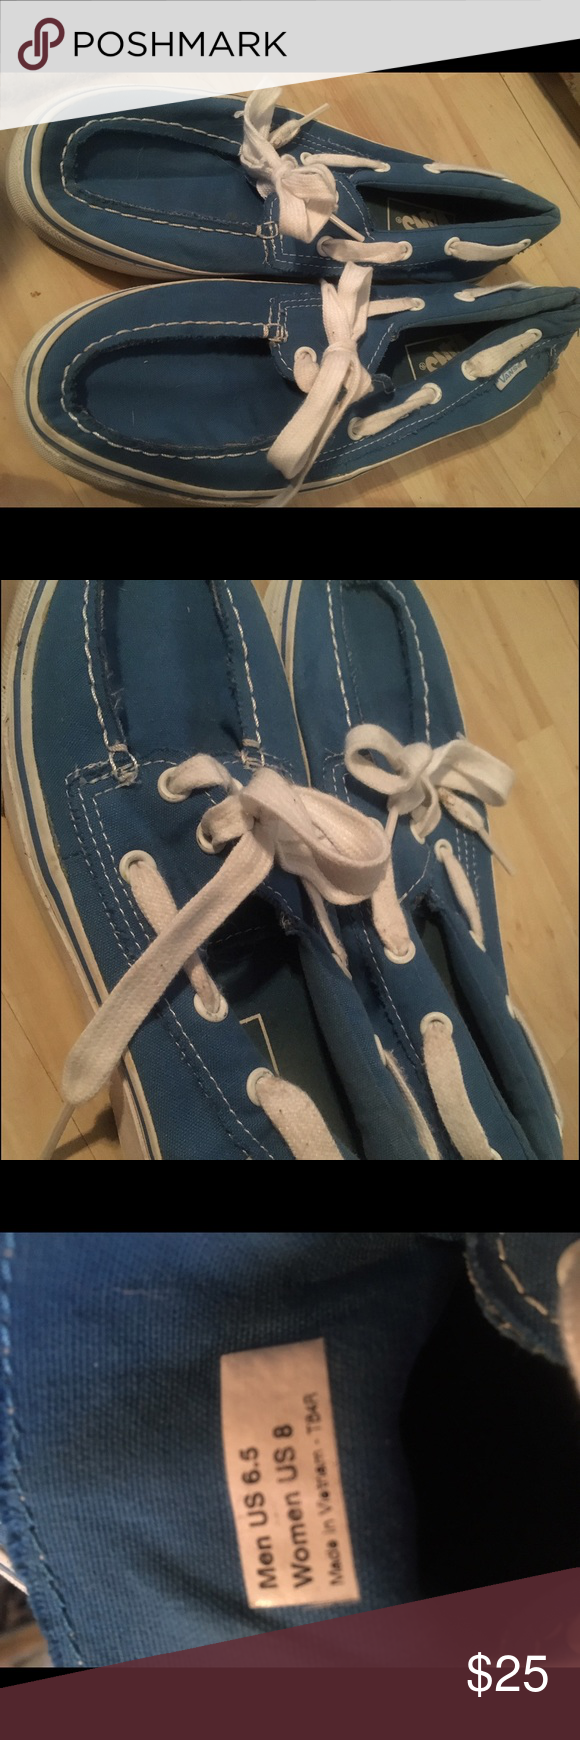 ec92325877 Blue Vans Gently used blue vans. Men s size 6.5 and Women s size 8.  Literally only worn about 4 times. Vans Shoes Sneakers